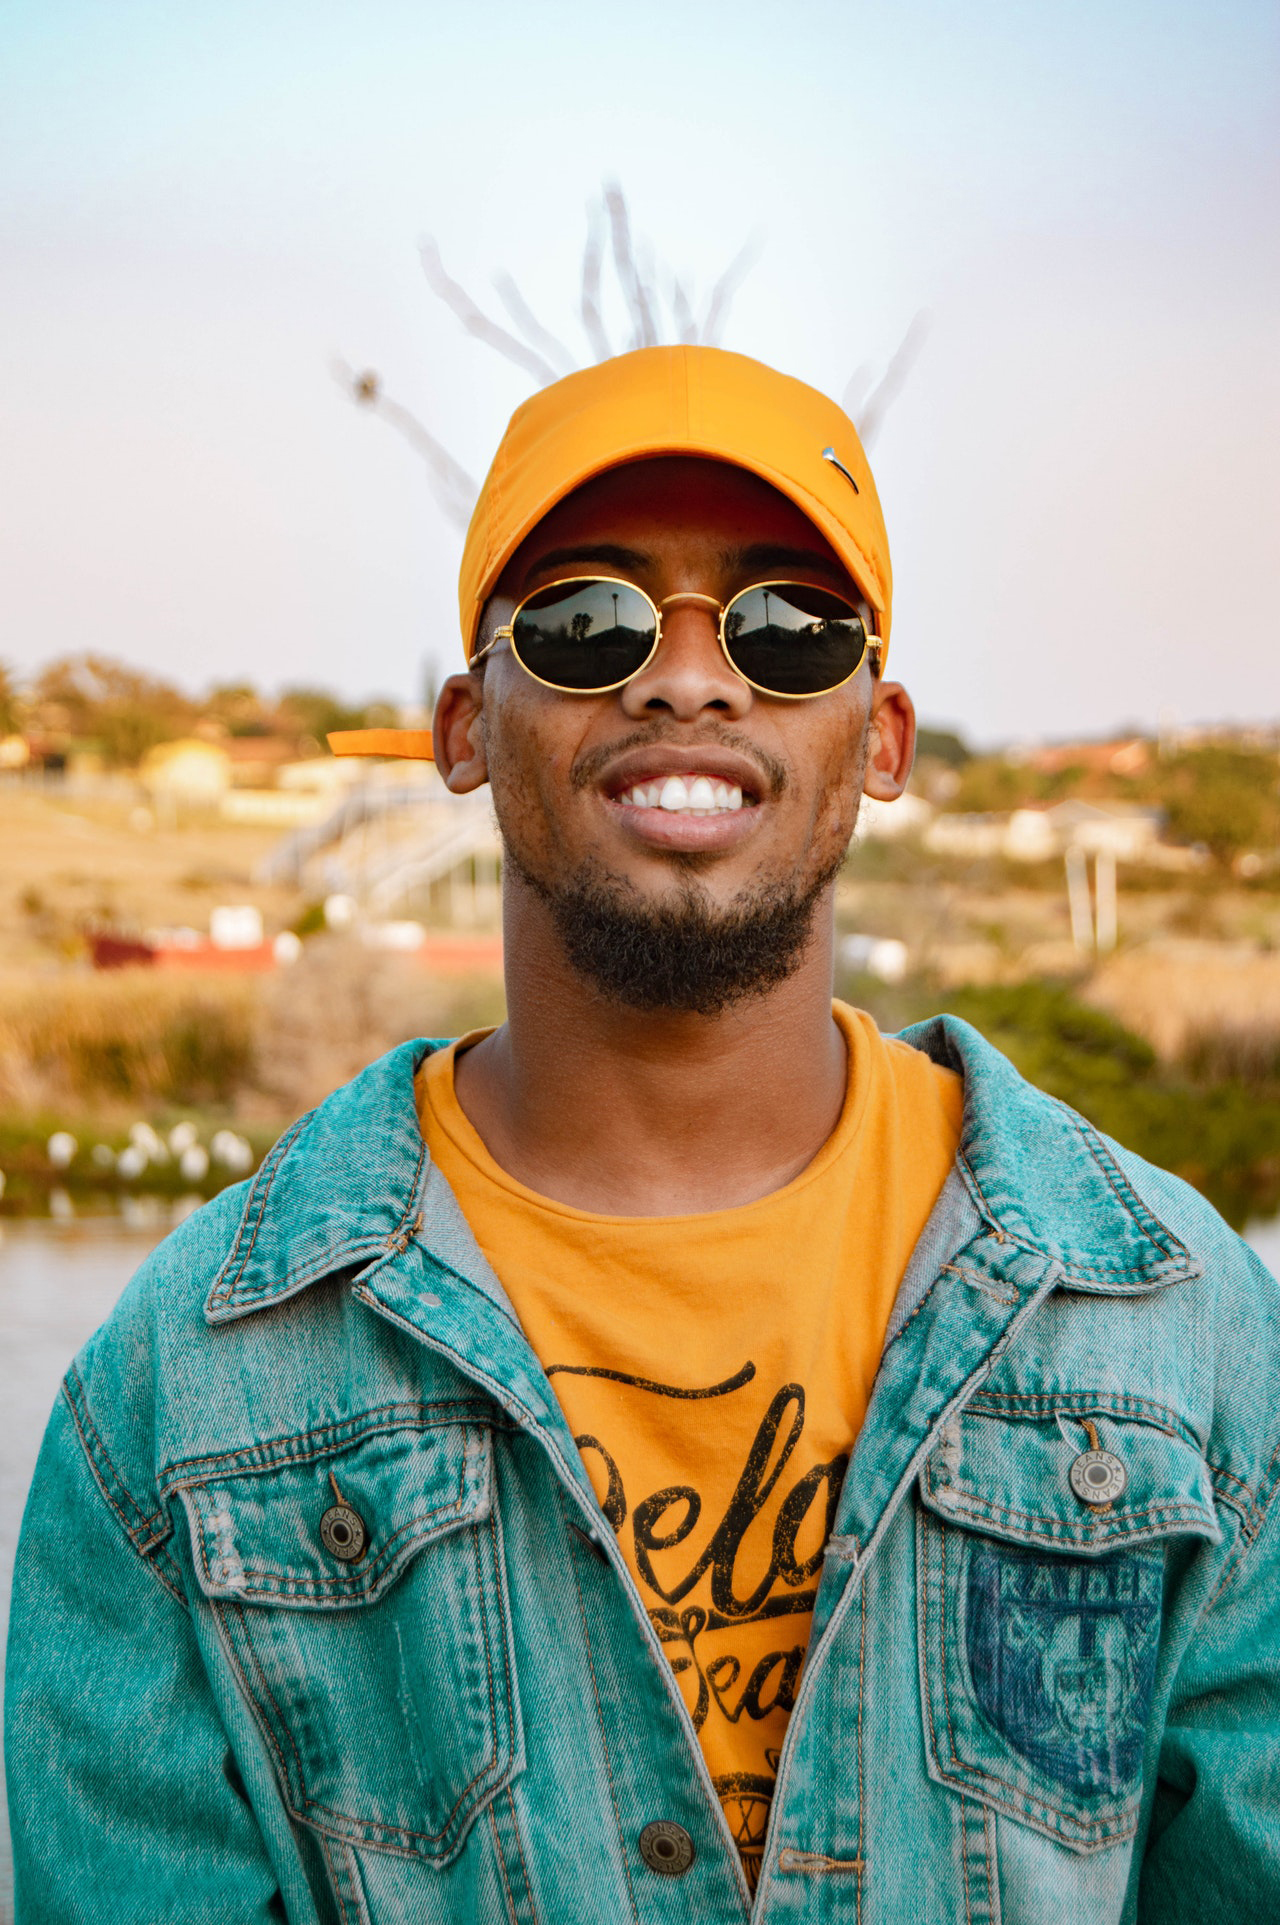 man-in-denim-jacket-yellow-cap-and-sunglasses-Photo by Keanen Geego Kilian from Pexels